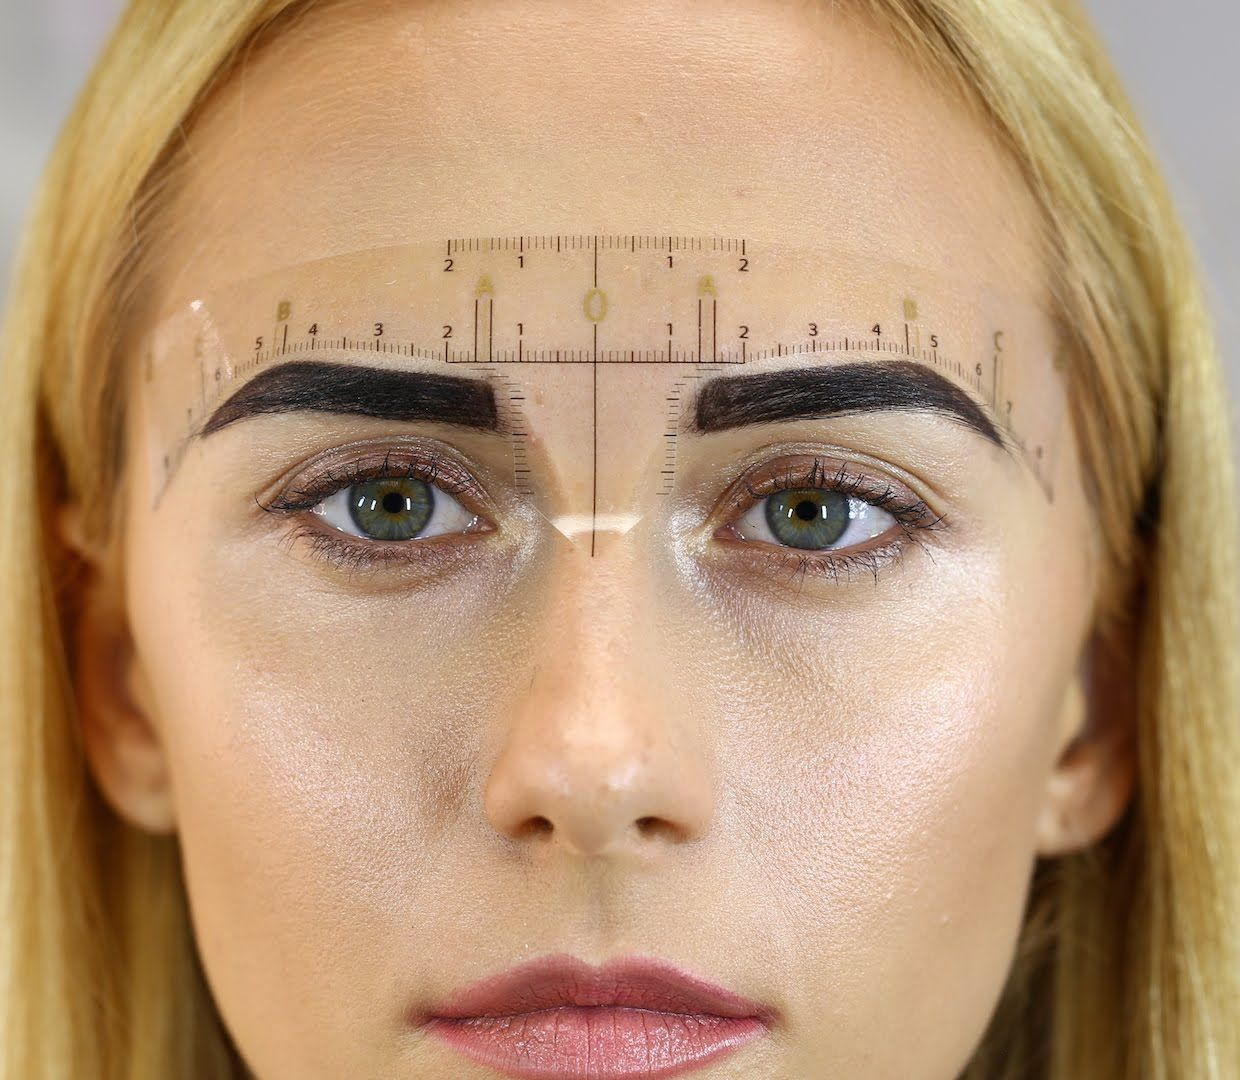 How To Use Darias Chuprys Eyebrow Measurement Ruler Eyebrow